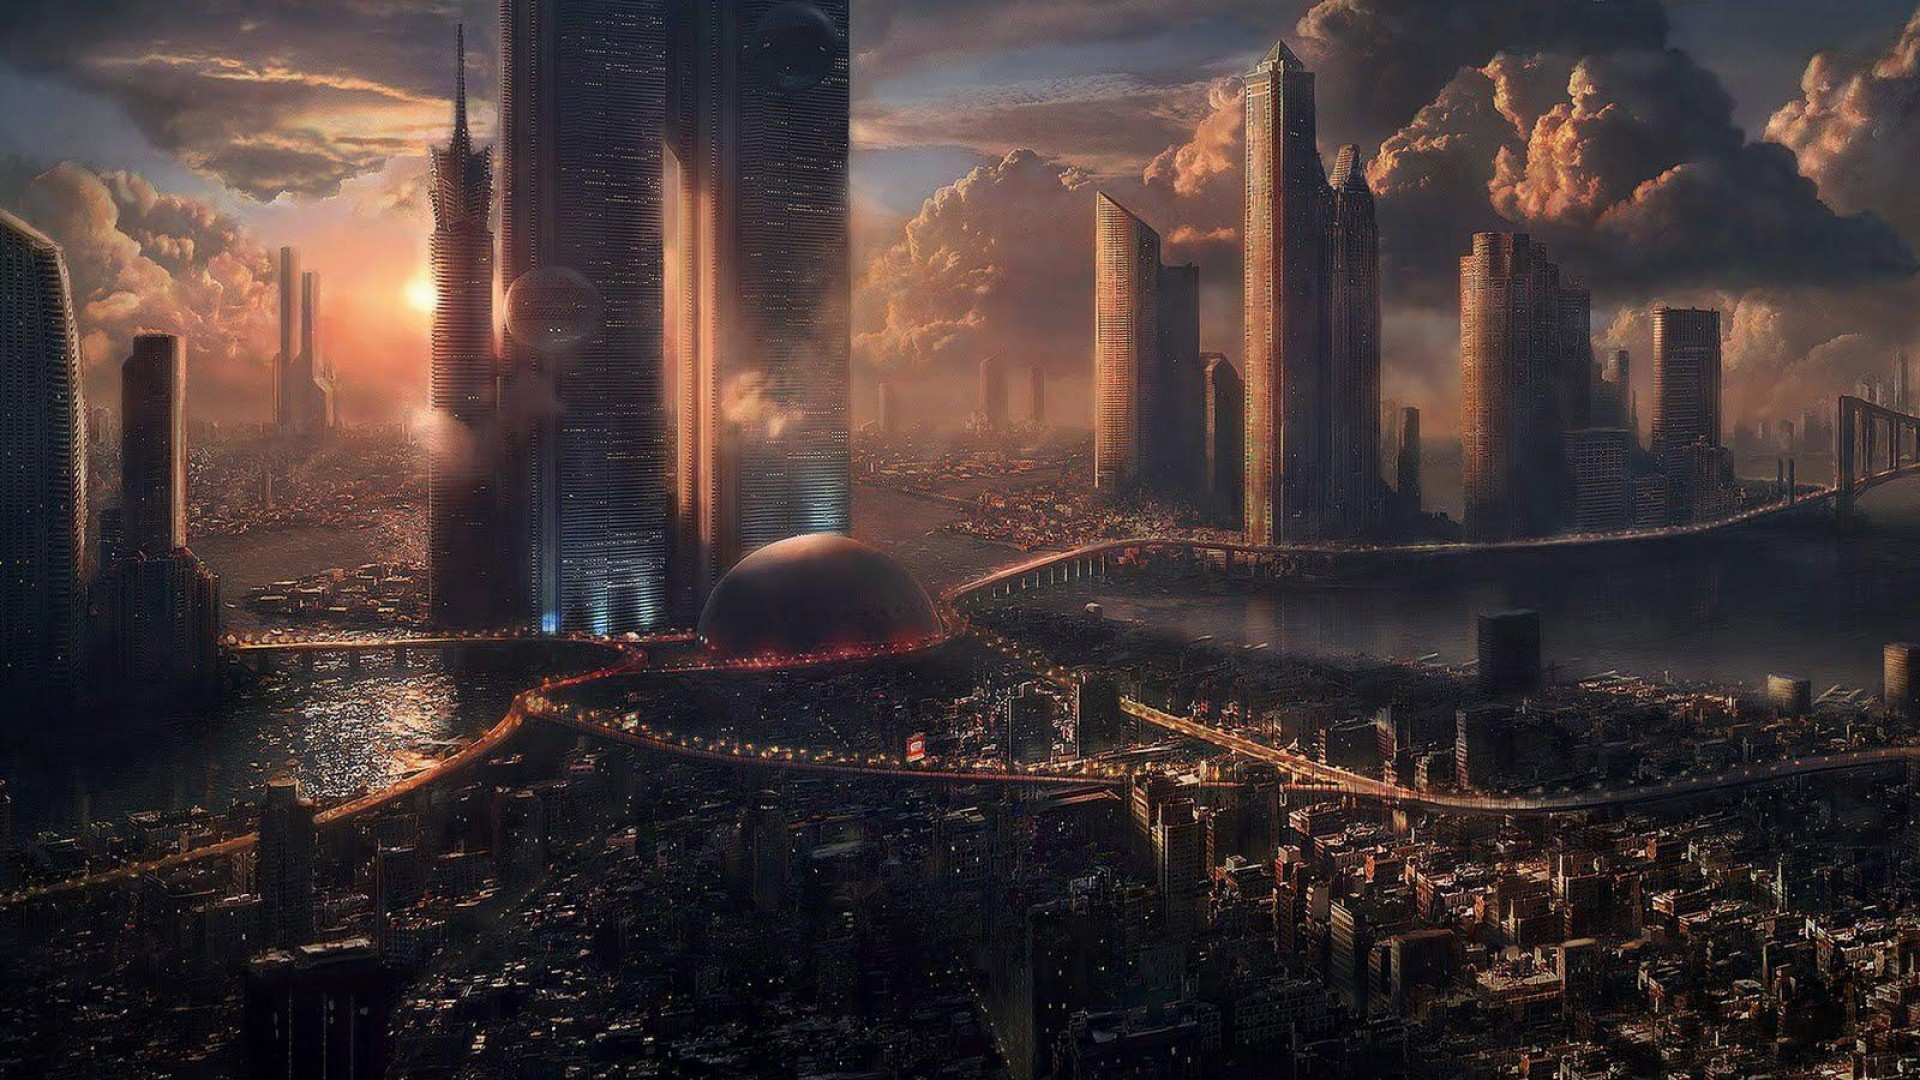 Fantasy City Wallpaper Hd: Fantasy Art Wallpapers HD